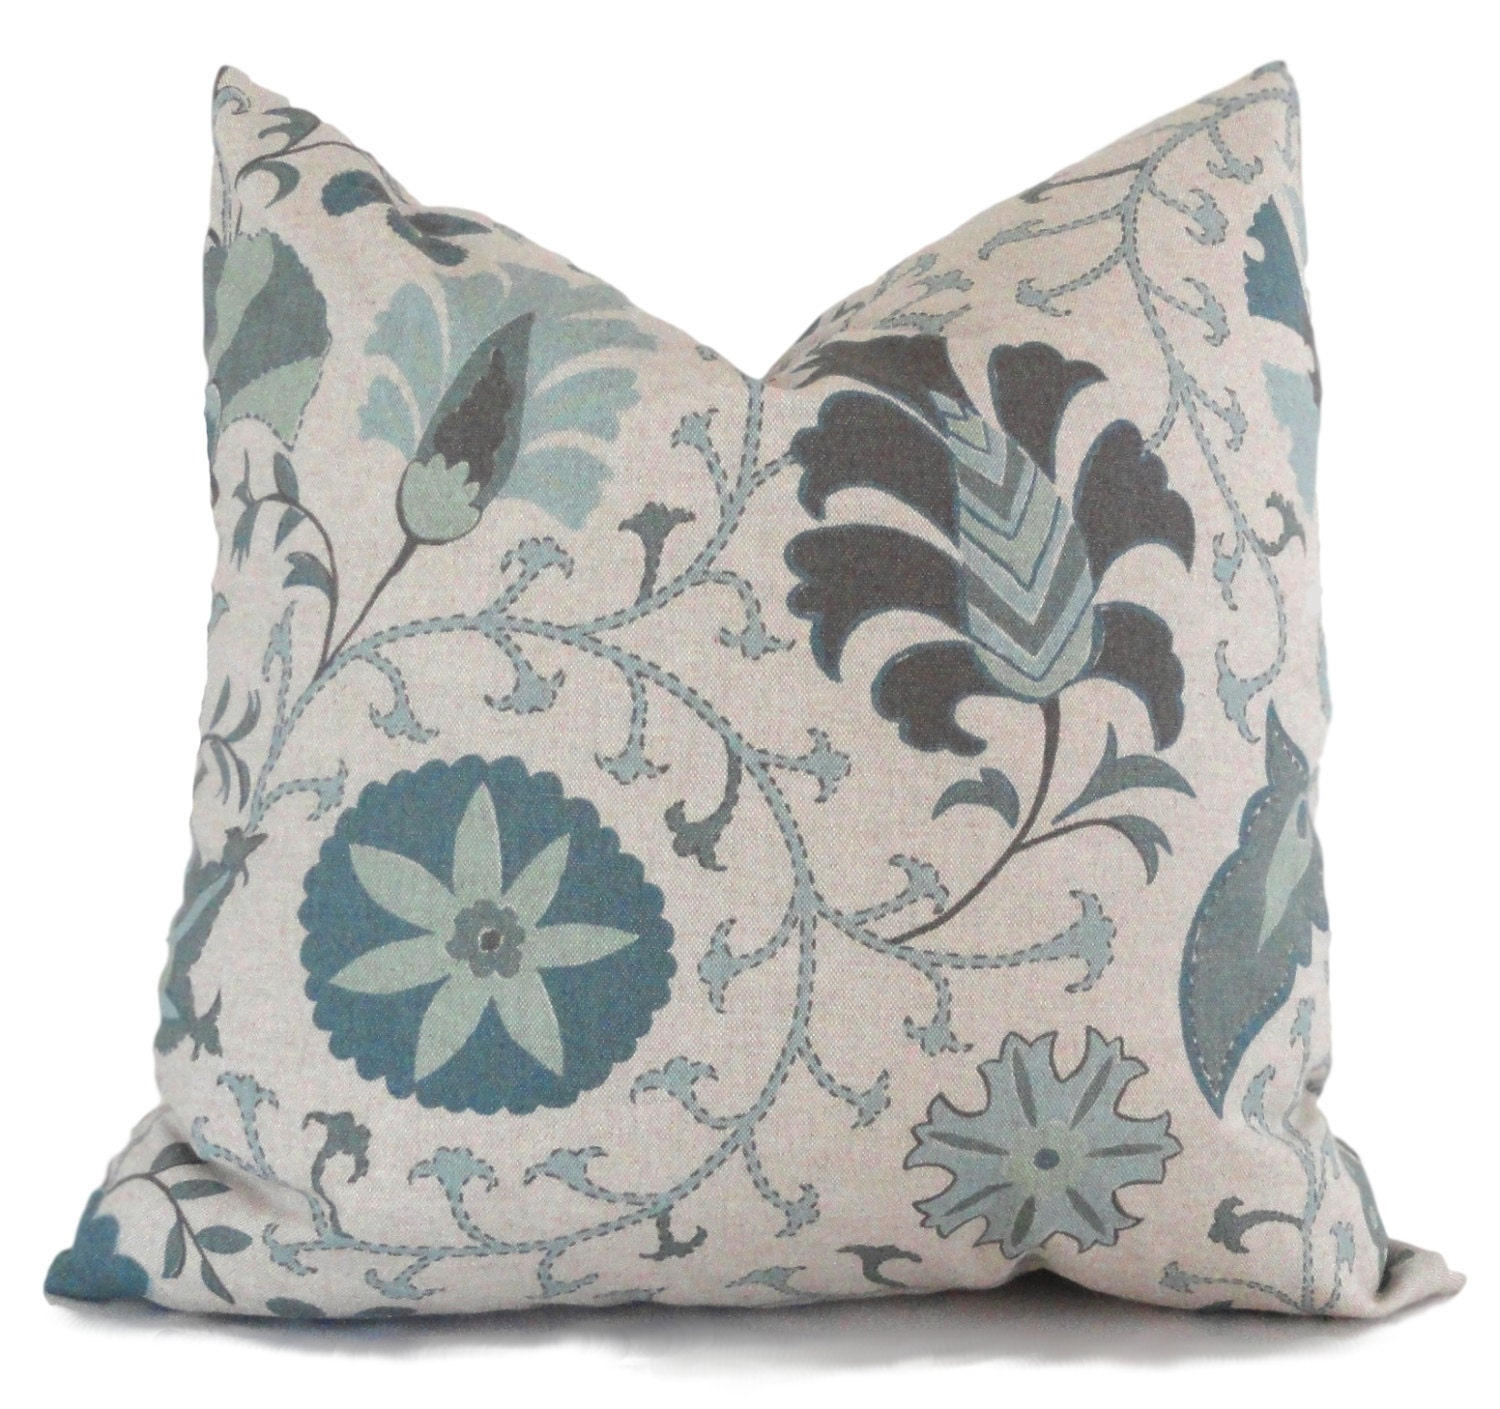 22x22 Decorative Pillows : Aqua and Gray Suzani Decorative Pillow Cover 18x18 20x20